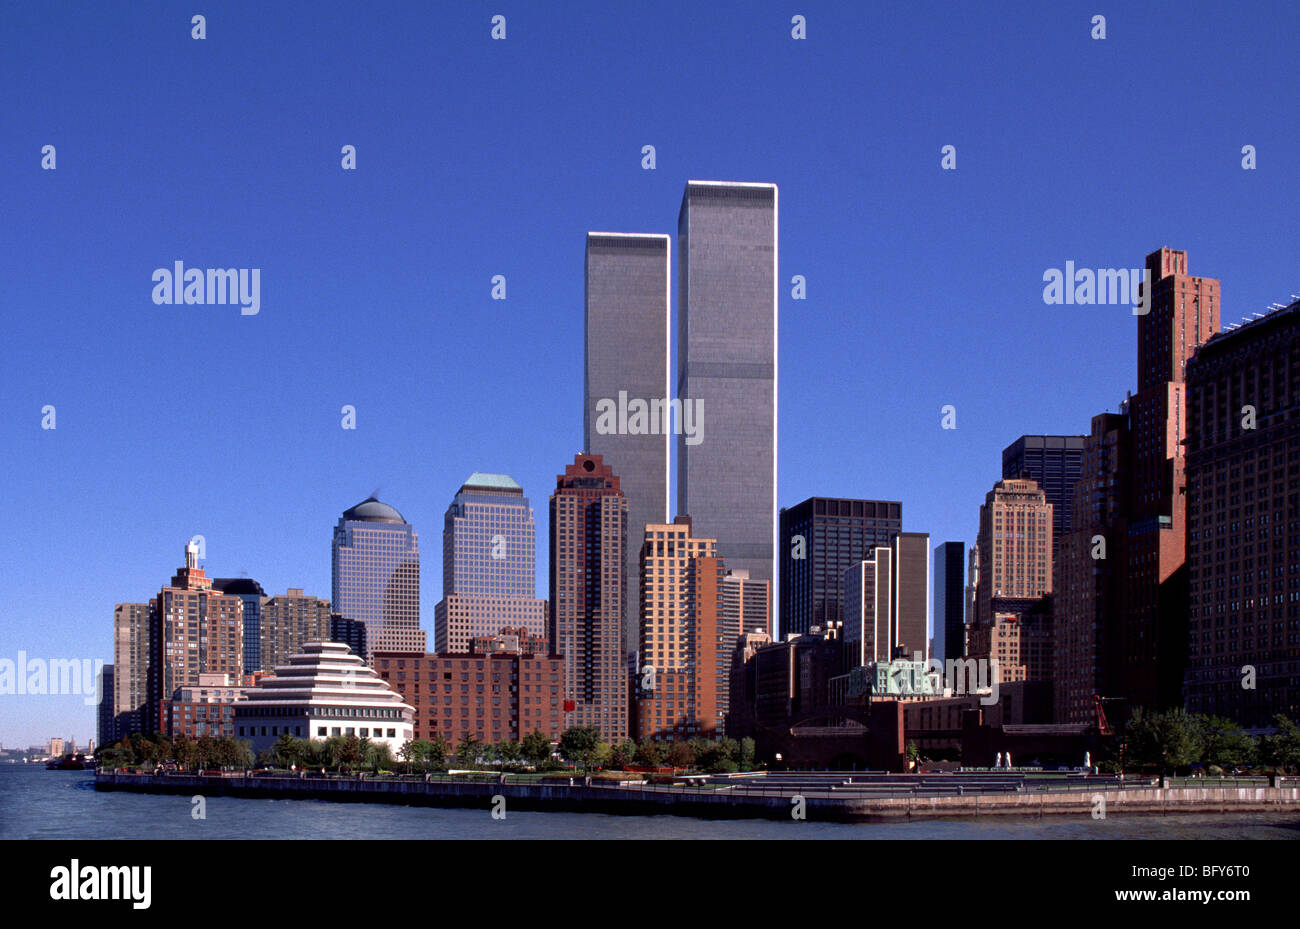 New York skyline with World Trade Center buildings featured - Stock Image